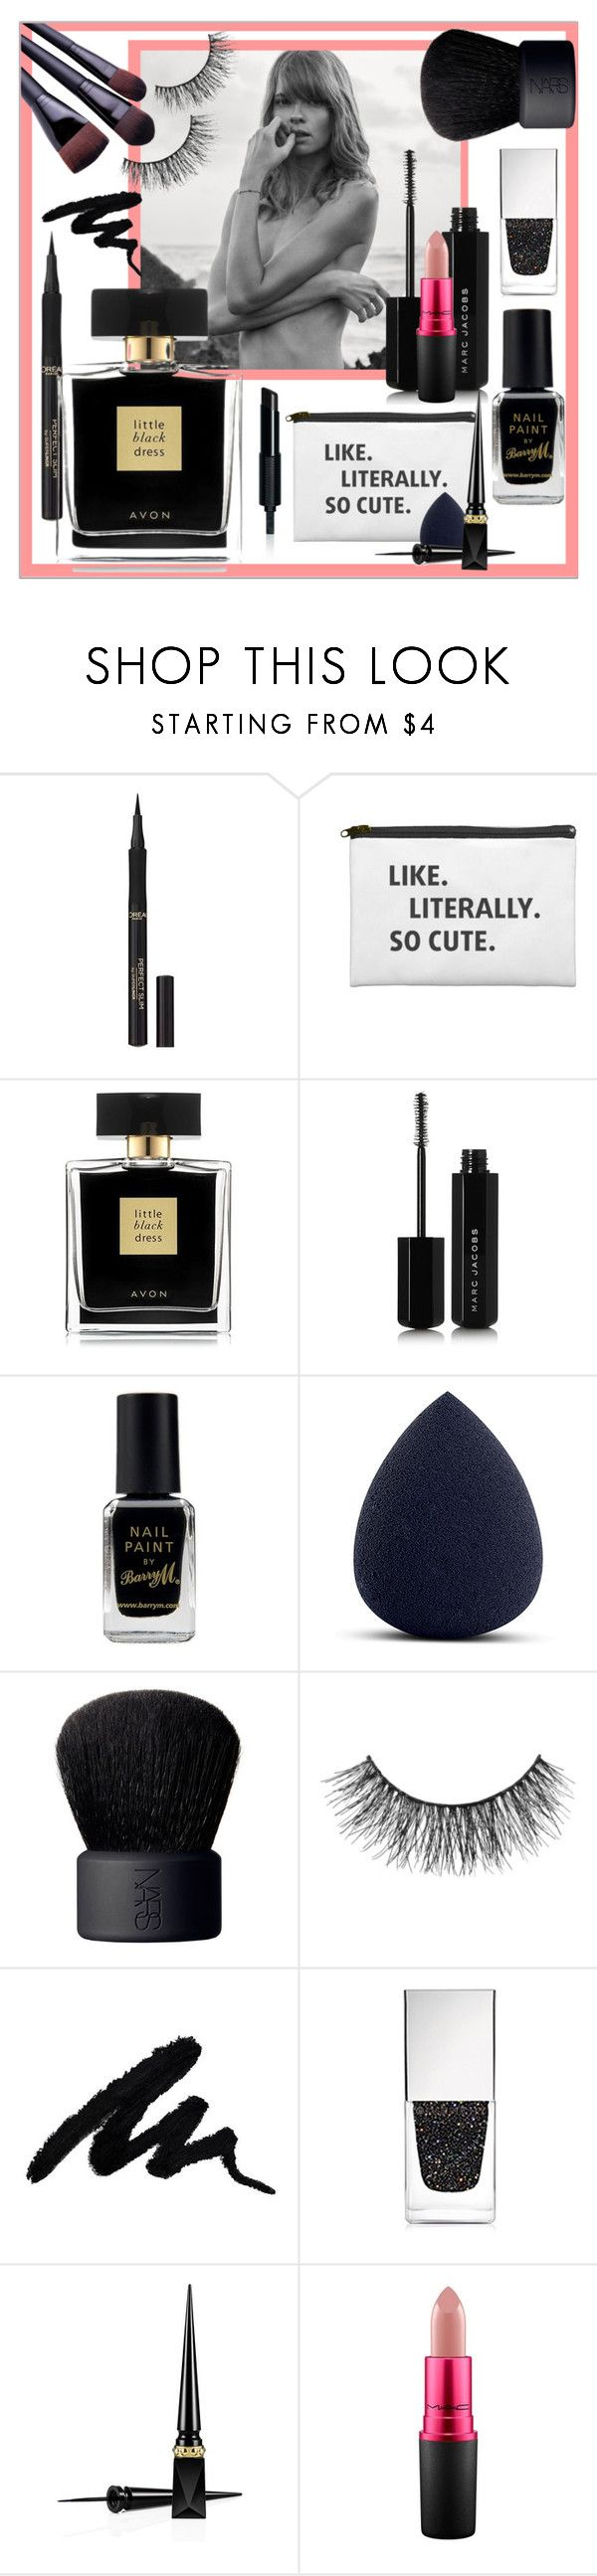 """""""So cute black with a touch of pink 🌸"""" by frenchfriesblackmg ❤ liked on Polyvore featuring beauty, L'Oréal Paris, Avon, Marc Jacobs, Barry M, My Makeup Brush Set, NARS Cosmetics, Miss Selfridge, Givenchy and Christian Louboutin"""